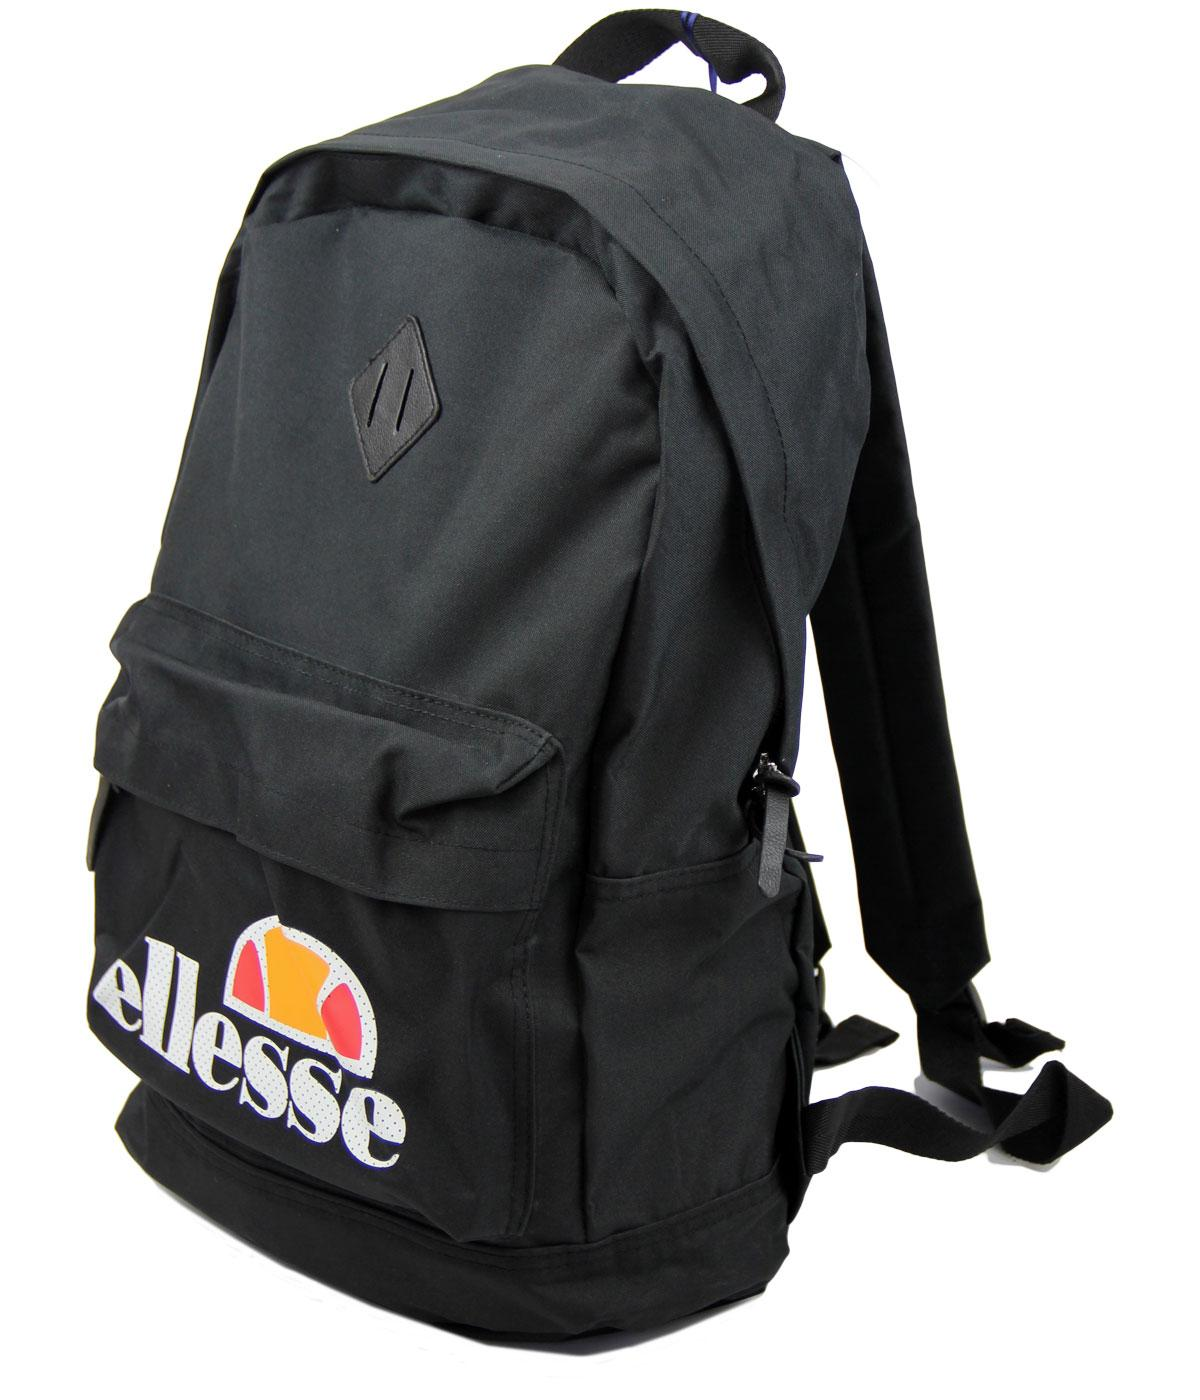 Brock ELLESSE Retro Indie Rucksack In Black